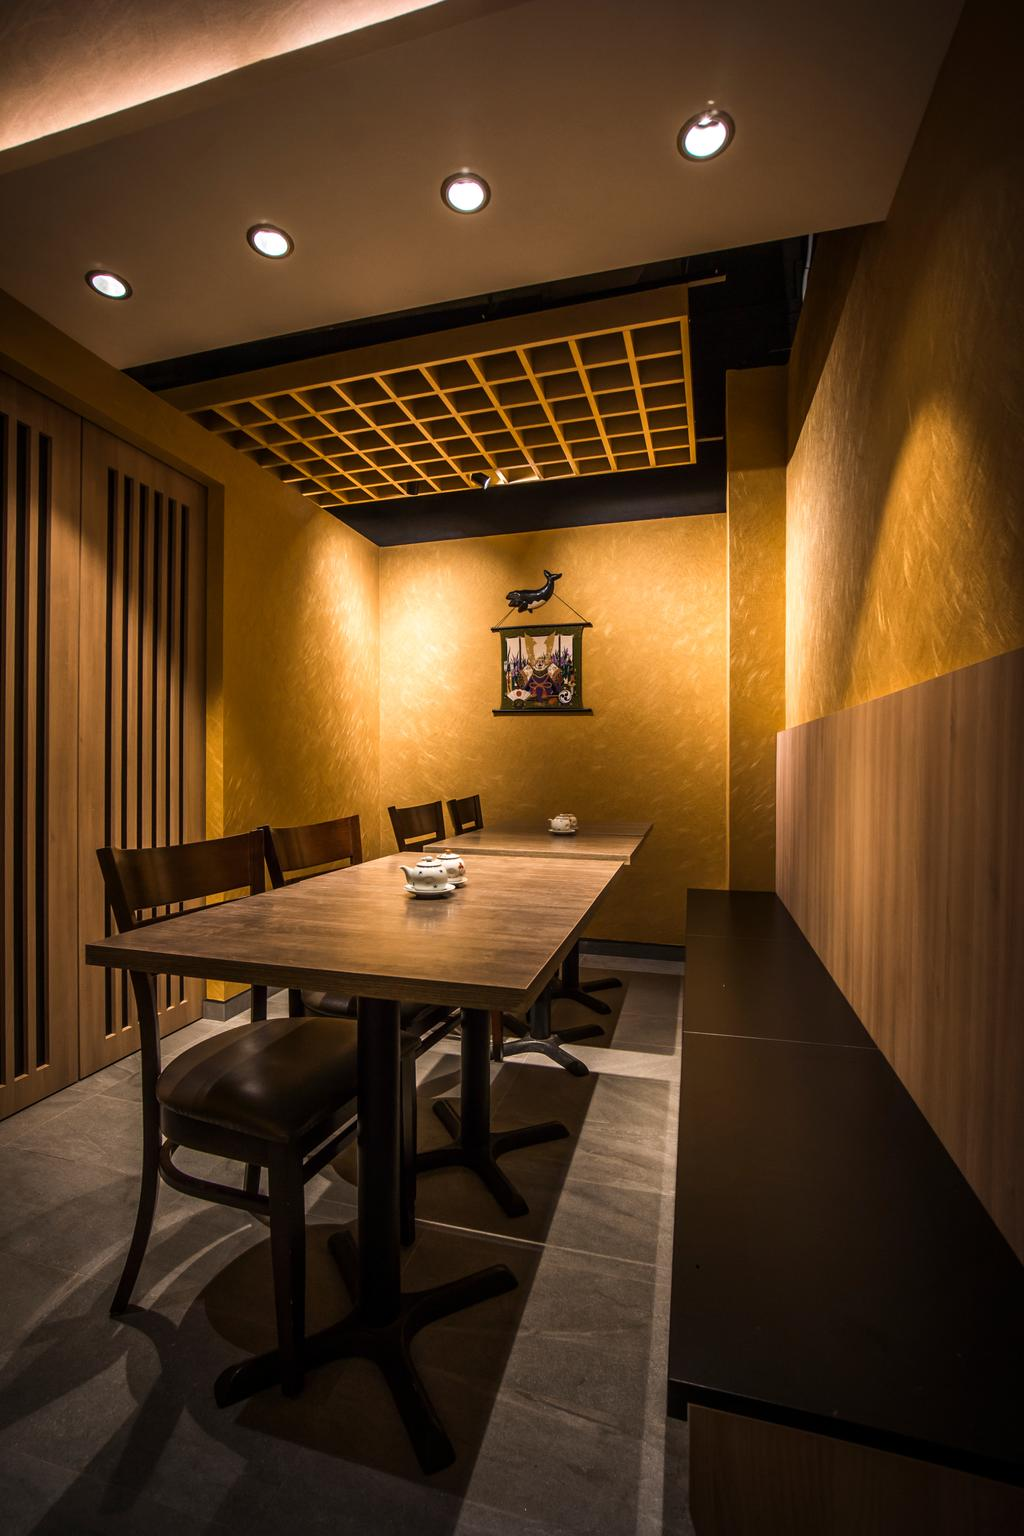 Hakumai, Commercial, Interior Designer, Flo Design, Contemporary, Dining Table, Furniture, Table, Dining Room, Indoors, Interior Design, Room, Conference Room, Meeting Room